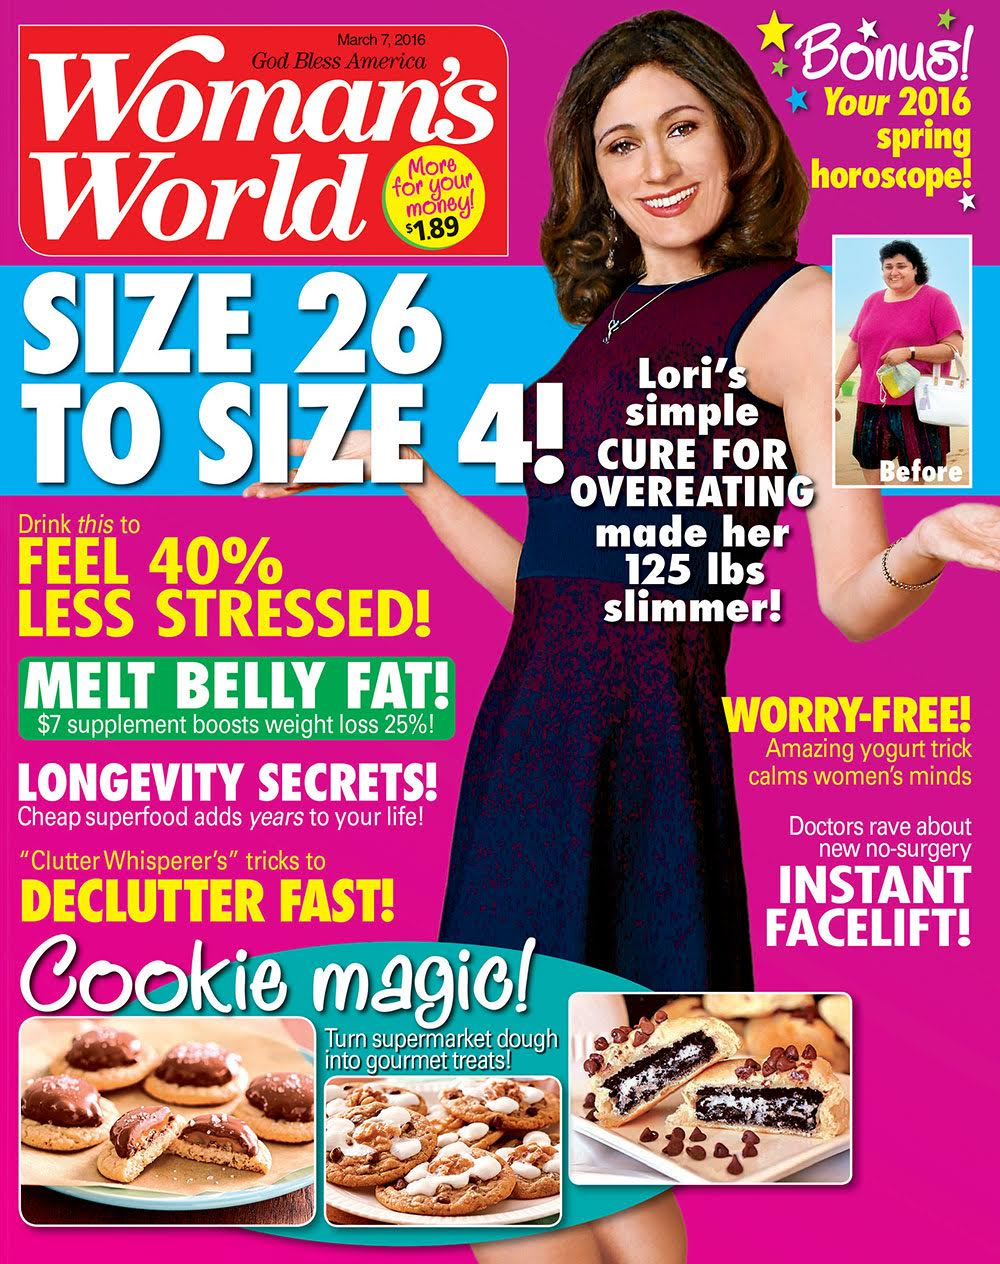 In This Issue of Woman's World